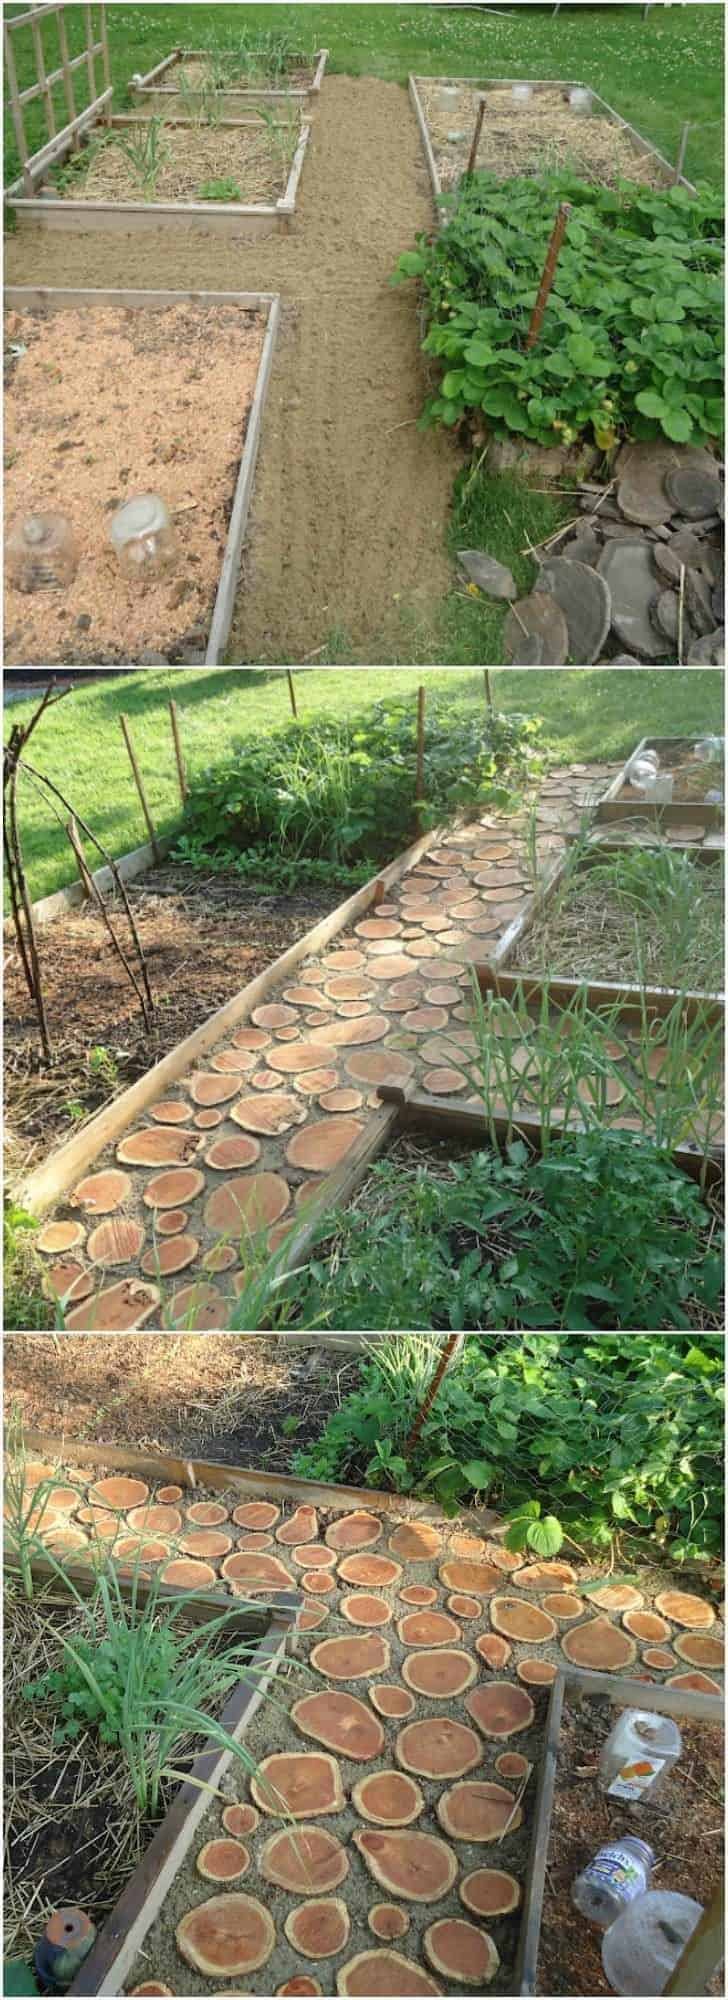 How to Make a Great Wood Logs Garden Pathway - garden-decor